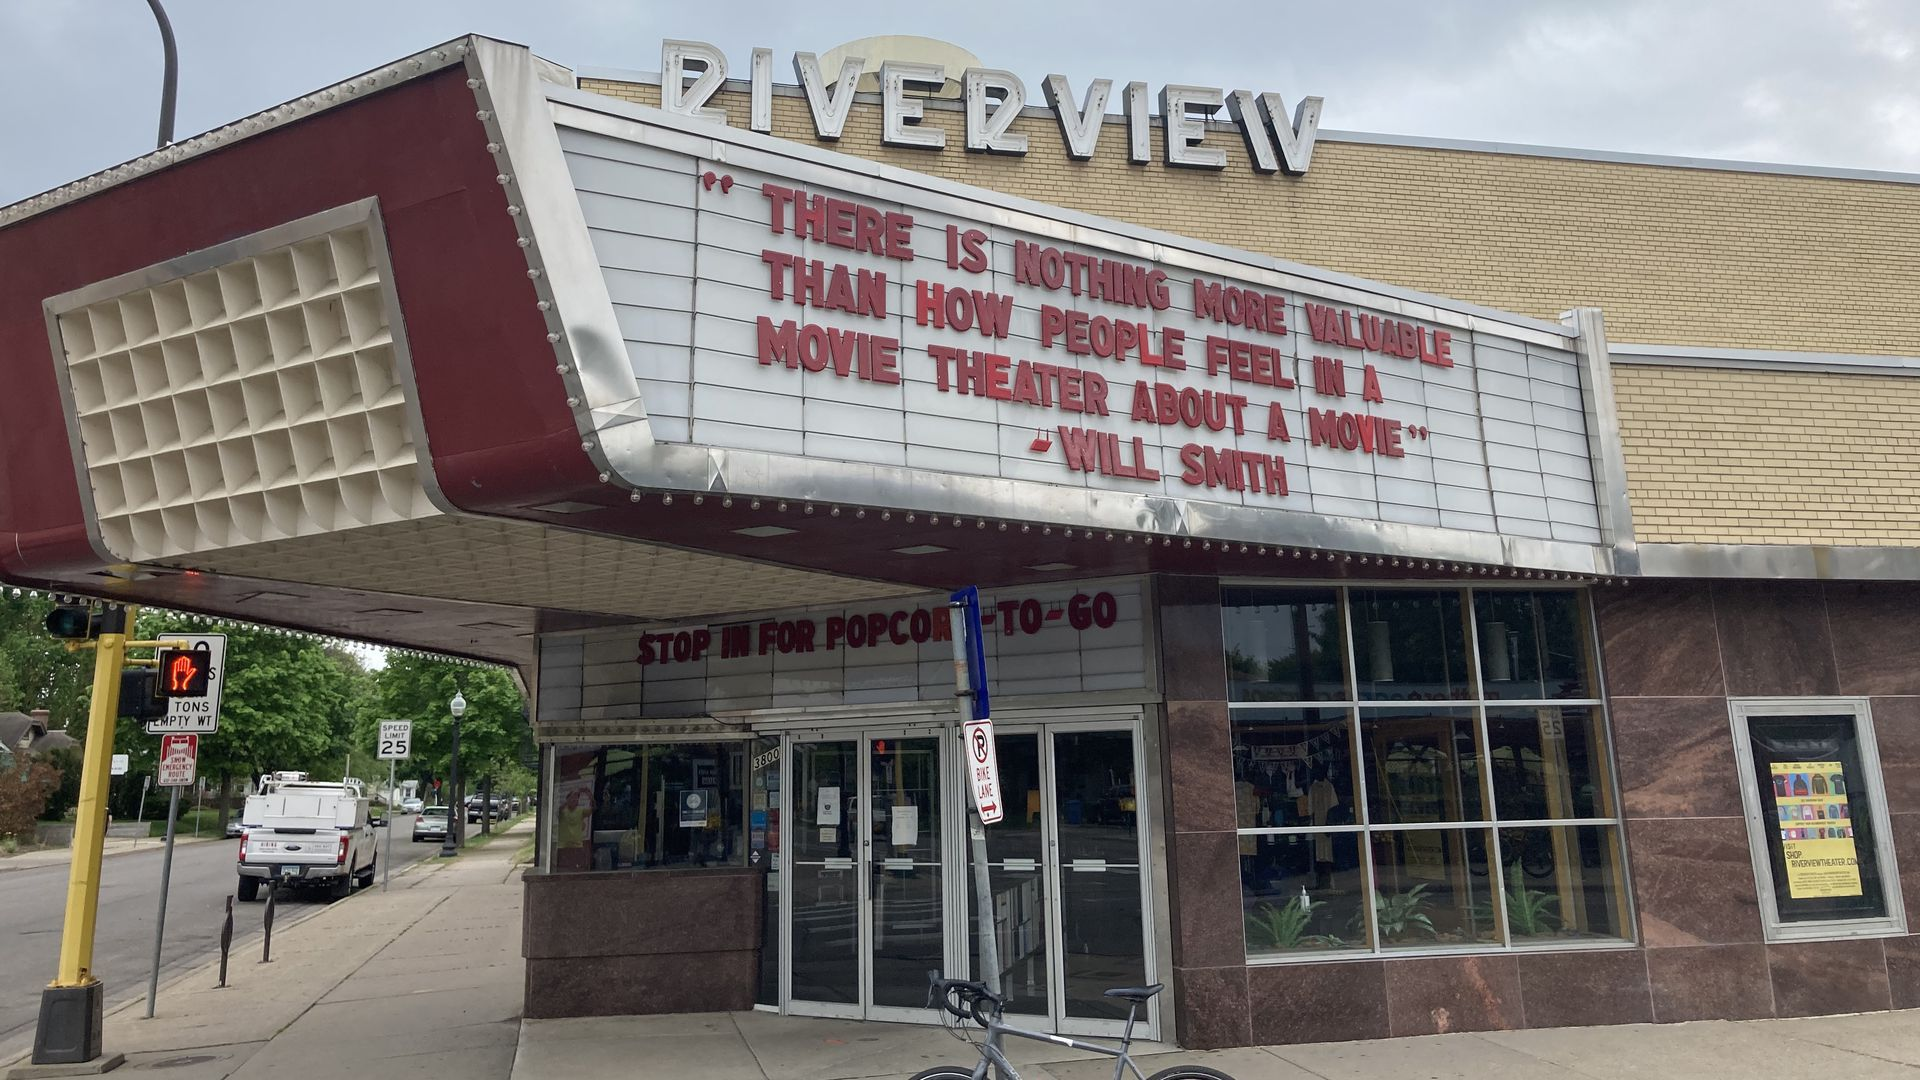 The exterior of Riverview Theater in south Minneapolis.